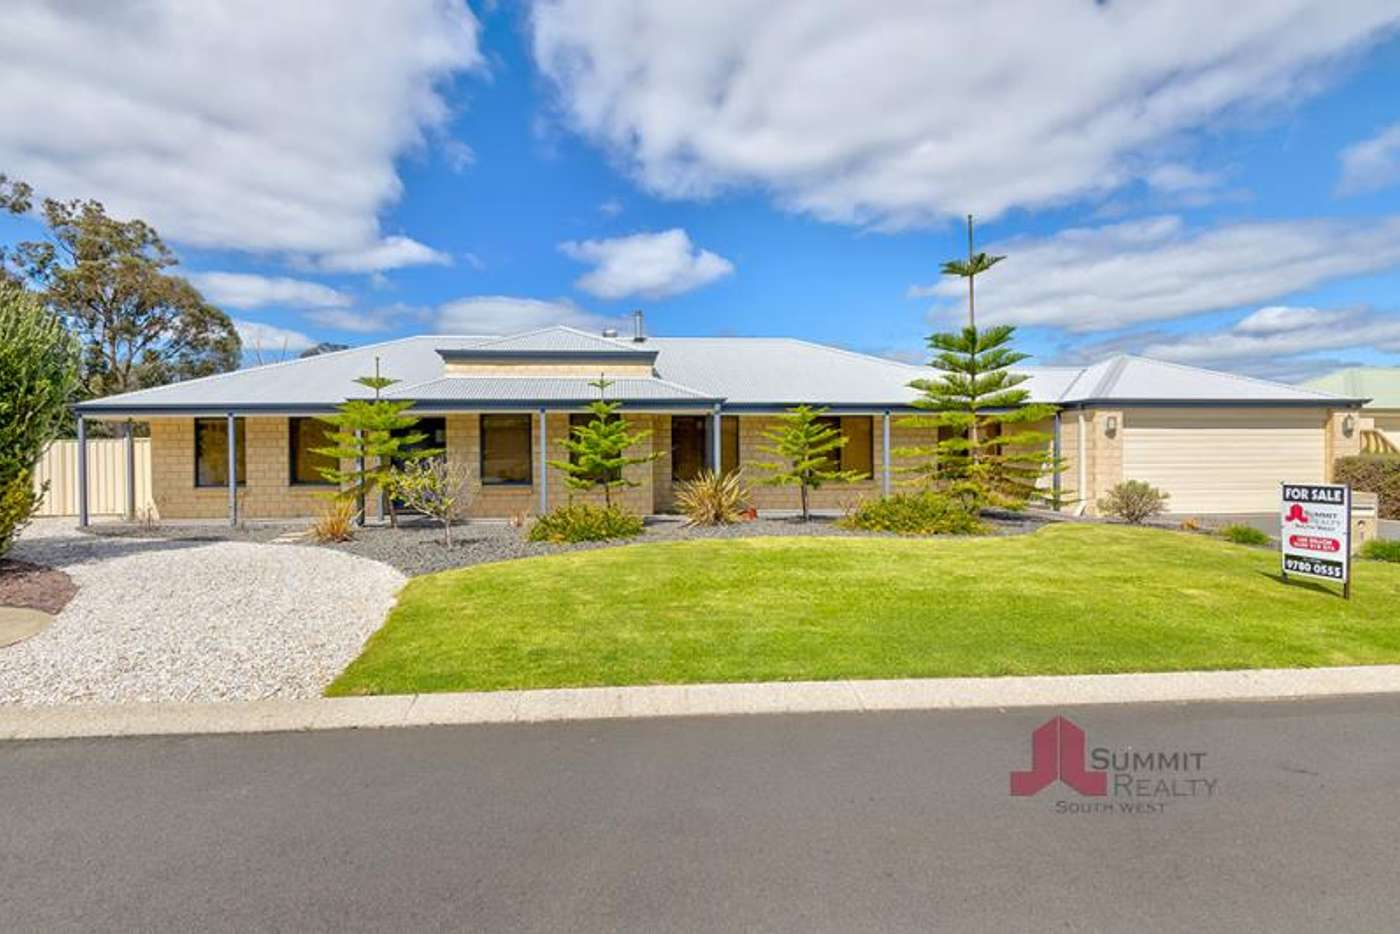 Main view of Homely house listing, 1 Gilmore Street, Dalyellup WA 6230